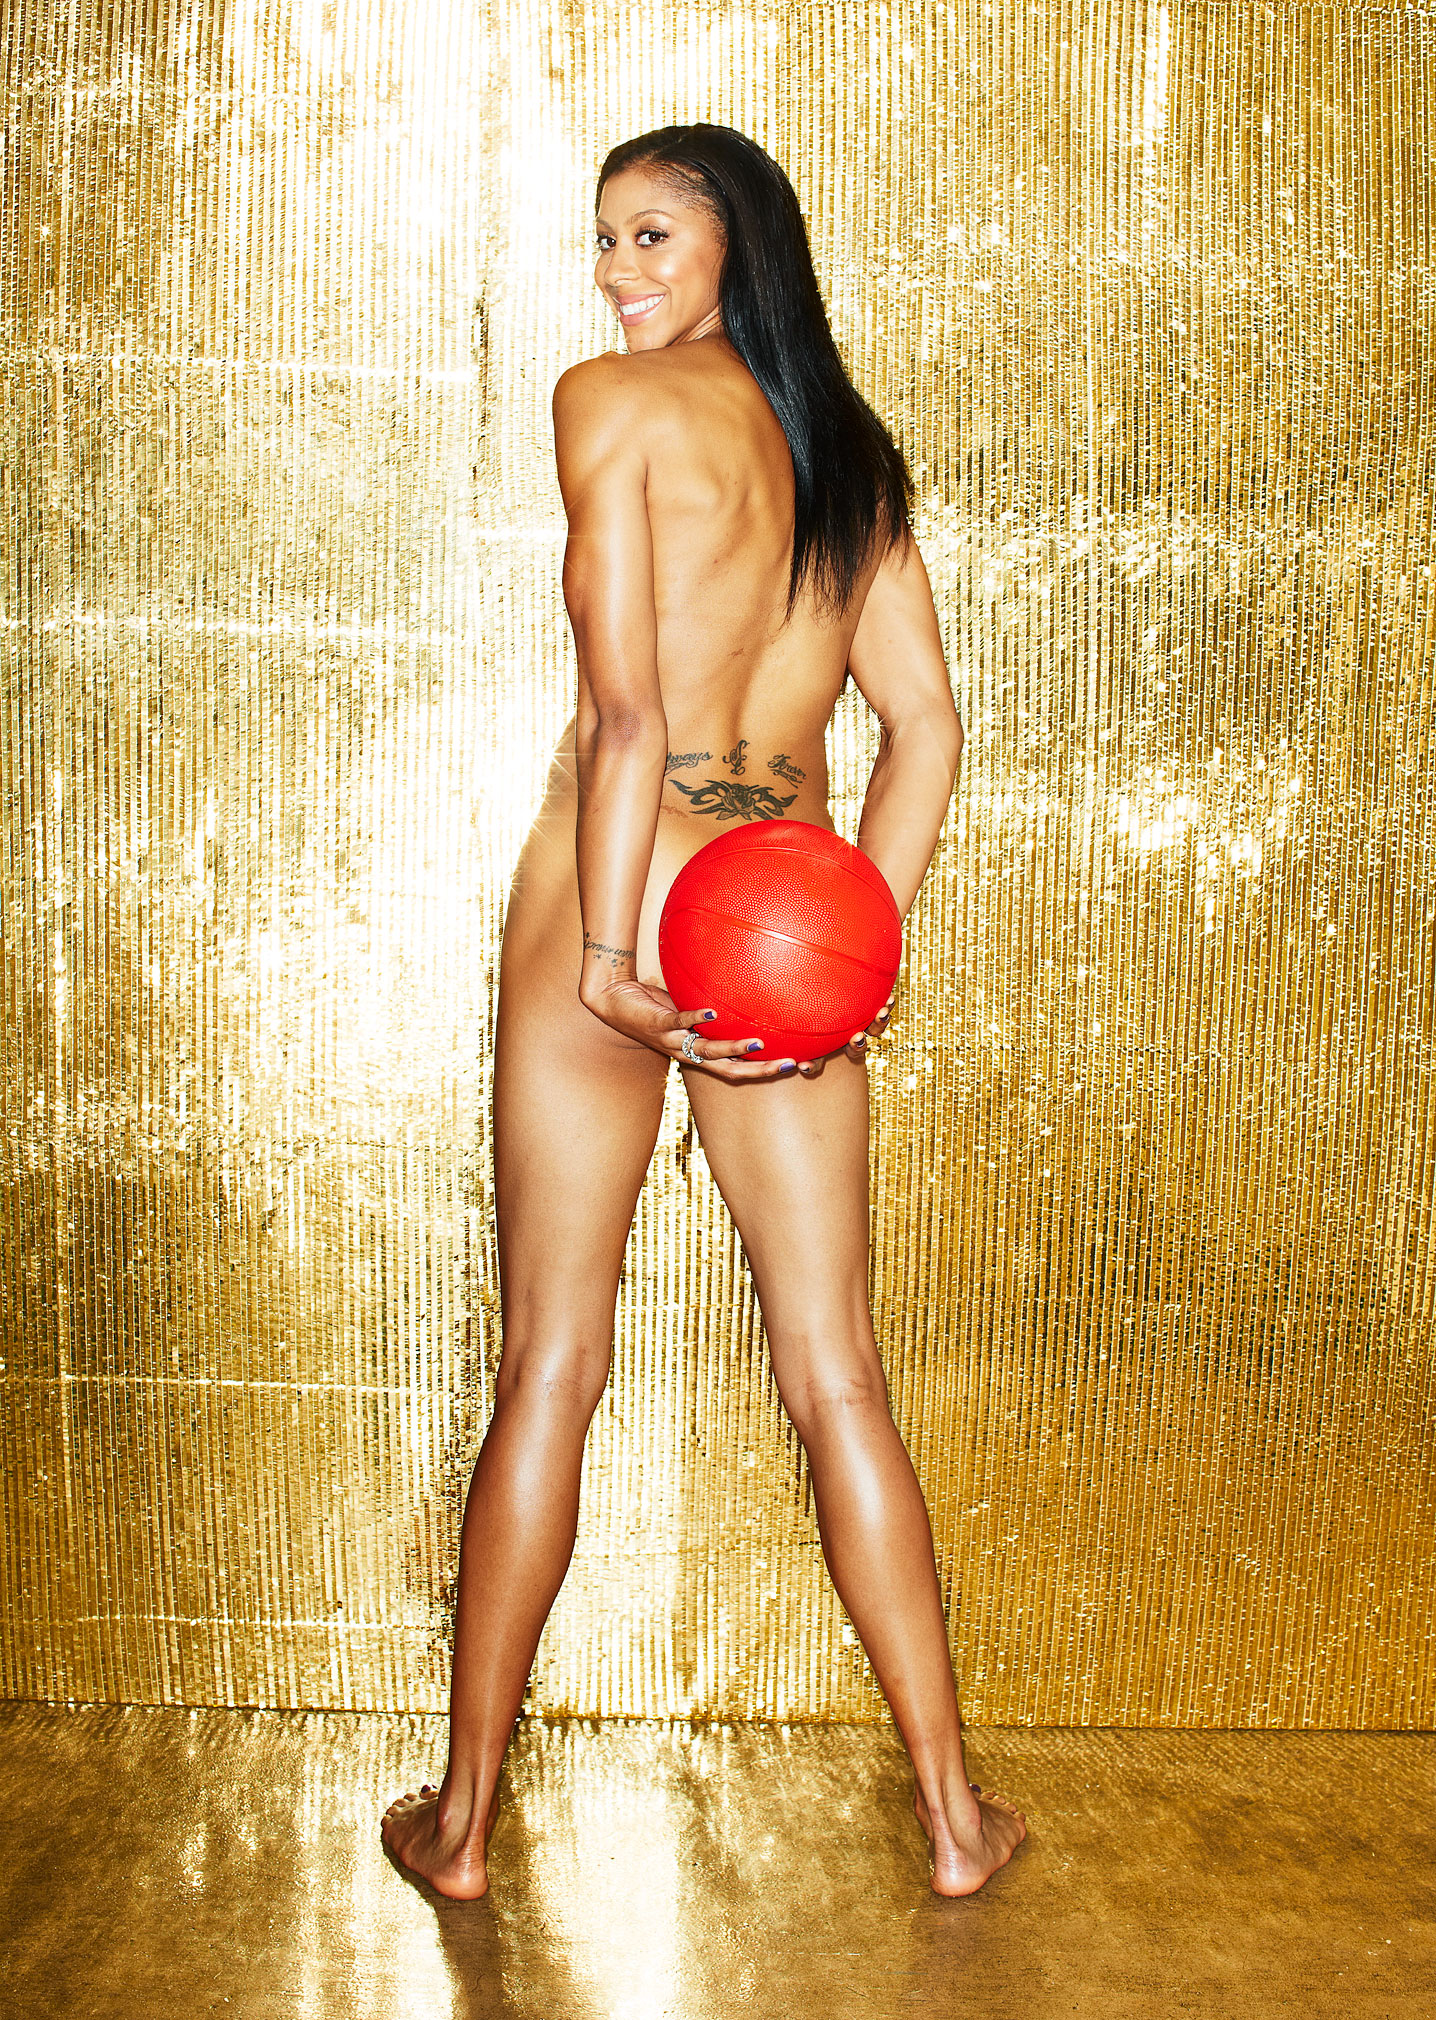 image Ali krieger espn body issue behind the scenes